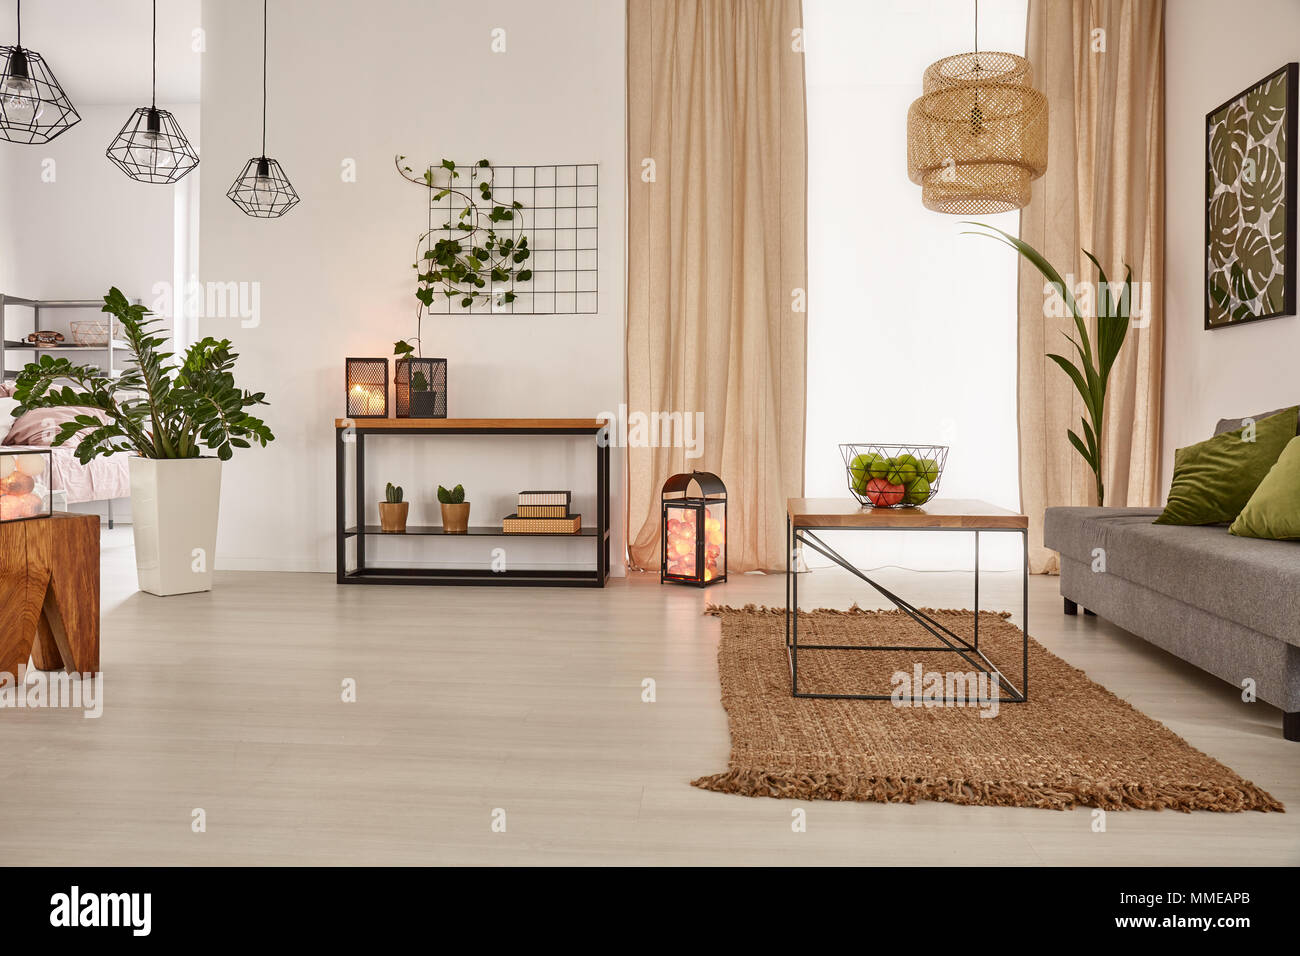 Earth's tones home interior with sofa and table - Stock Image